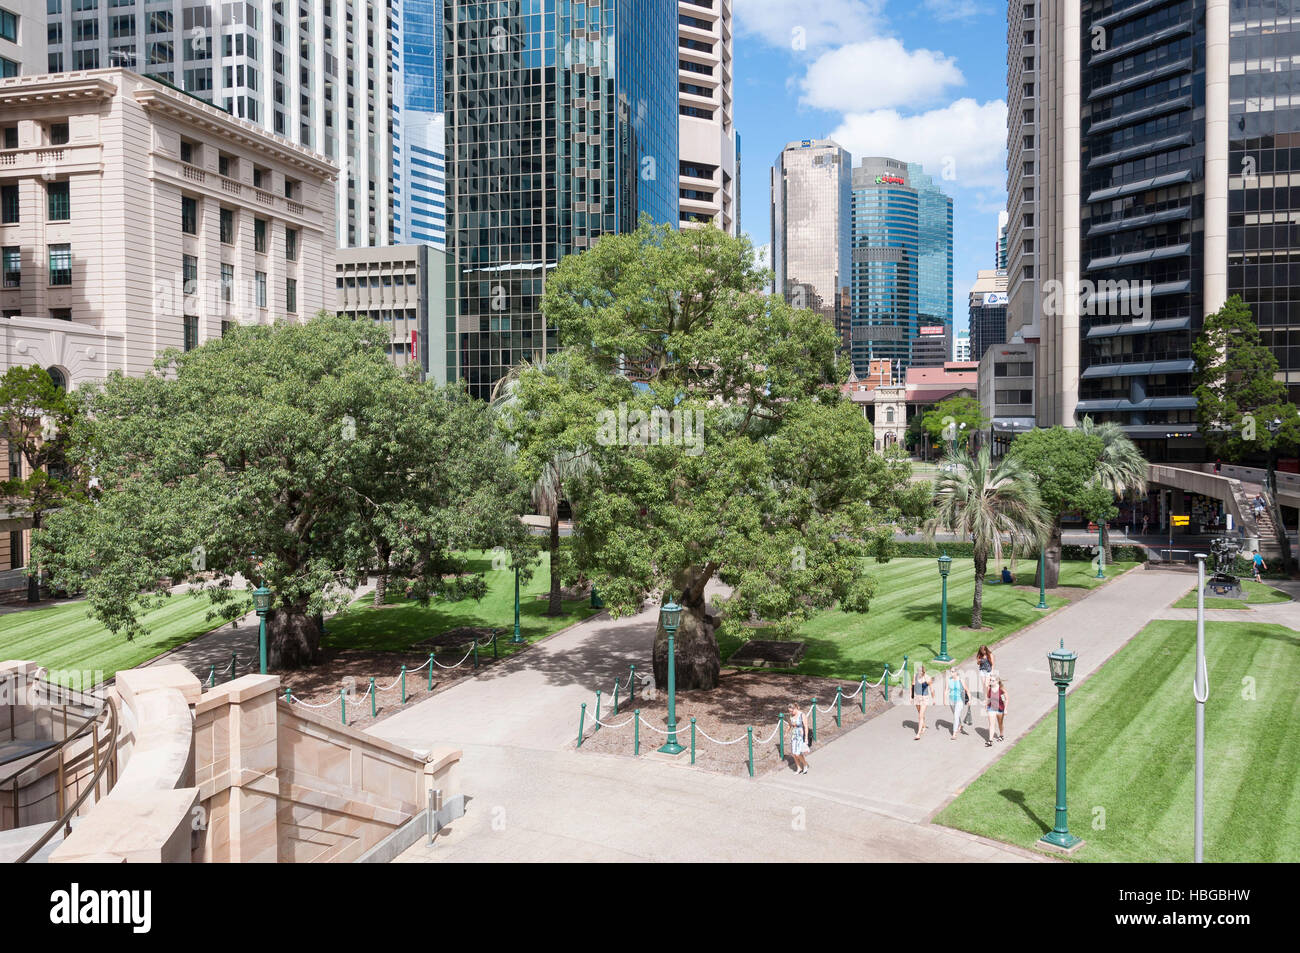 Anzac Square and CBD buildings, Brisbane City, Brisbane, Queensland, Australia - Stock Image